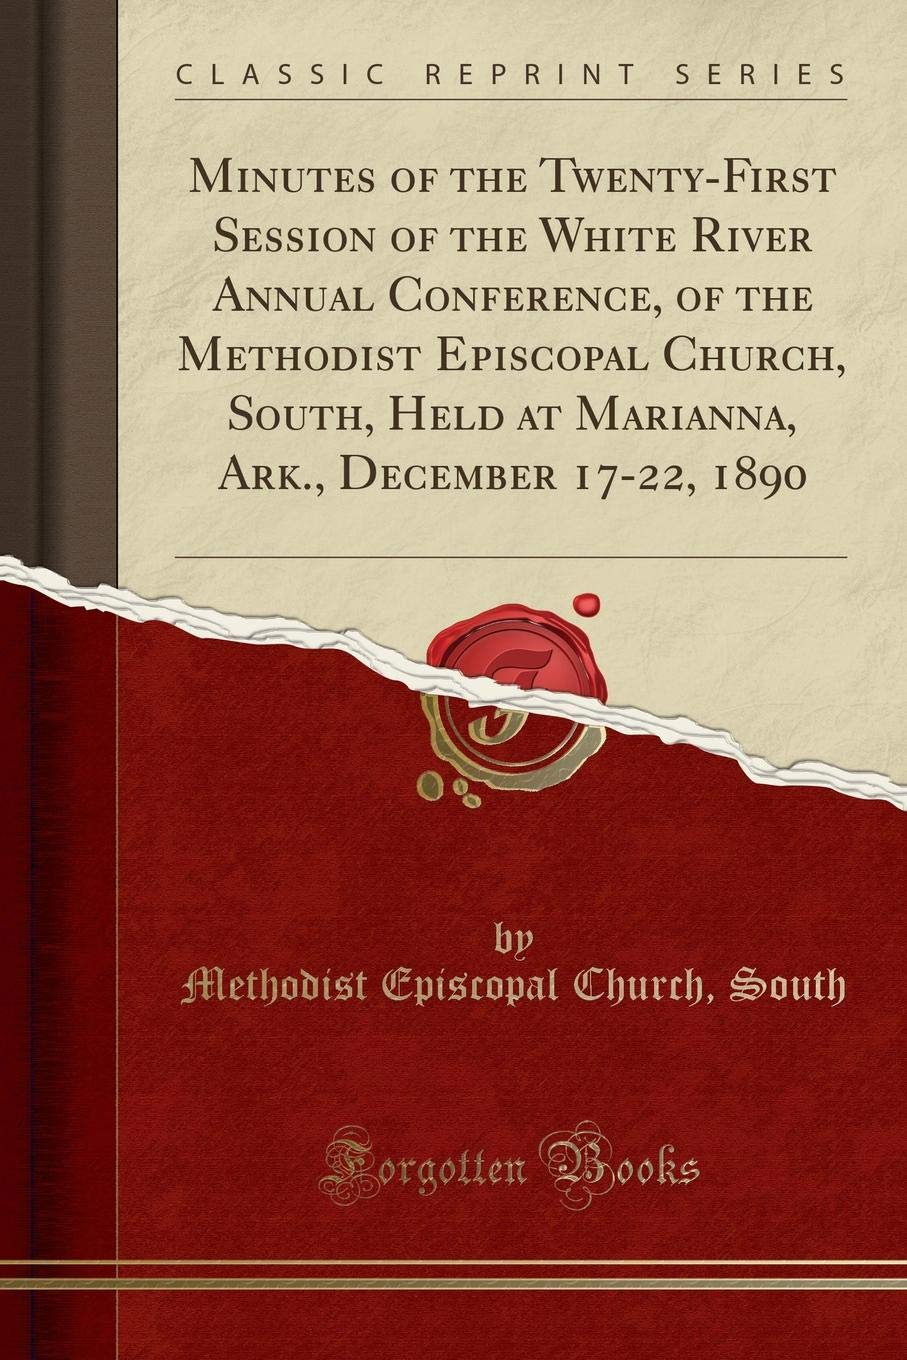 Minutes of the Twenty-First Session of the White River Annual Conference, of the Methodist Episcopal Church, South, Held at Marianna, Ark., December 17-22, 1890 (Classic Reprint) pdf